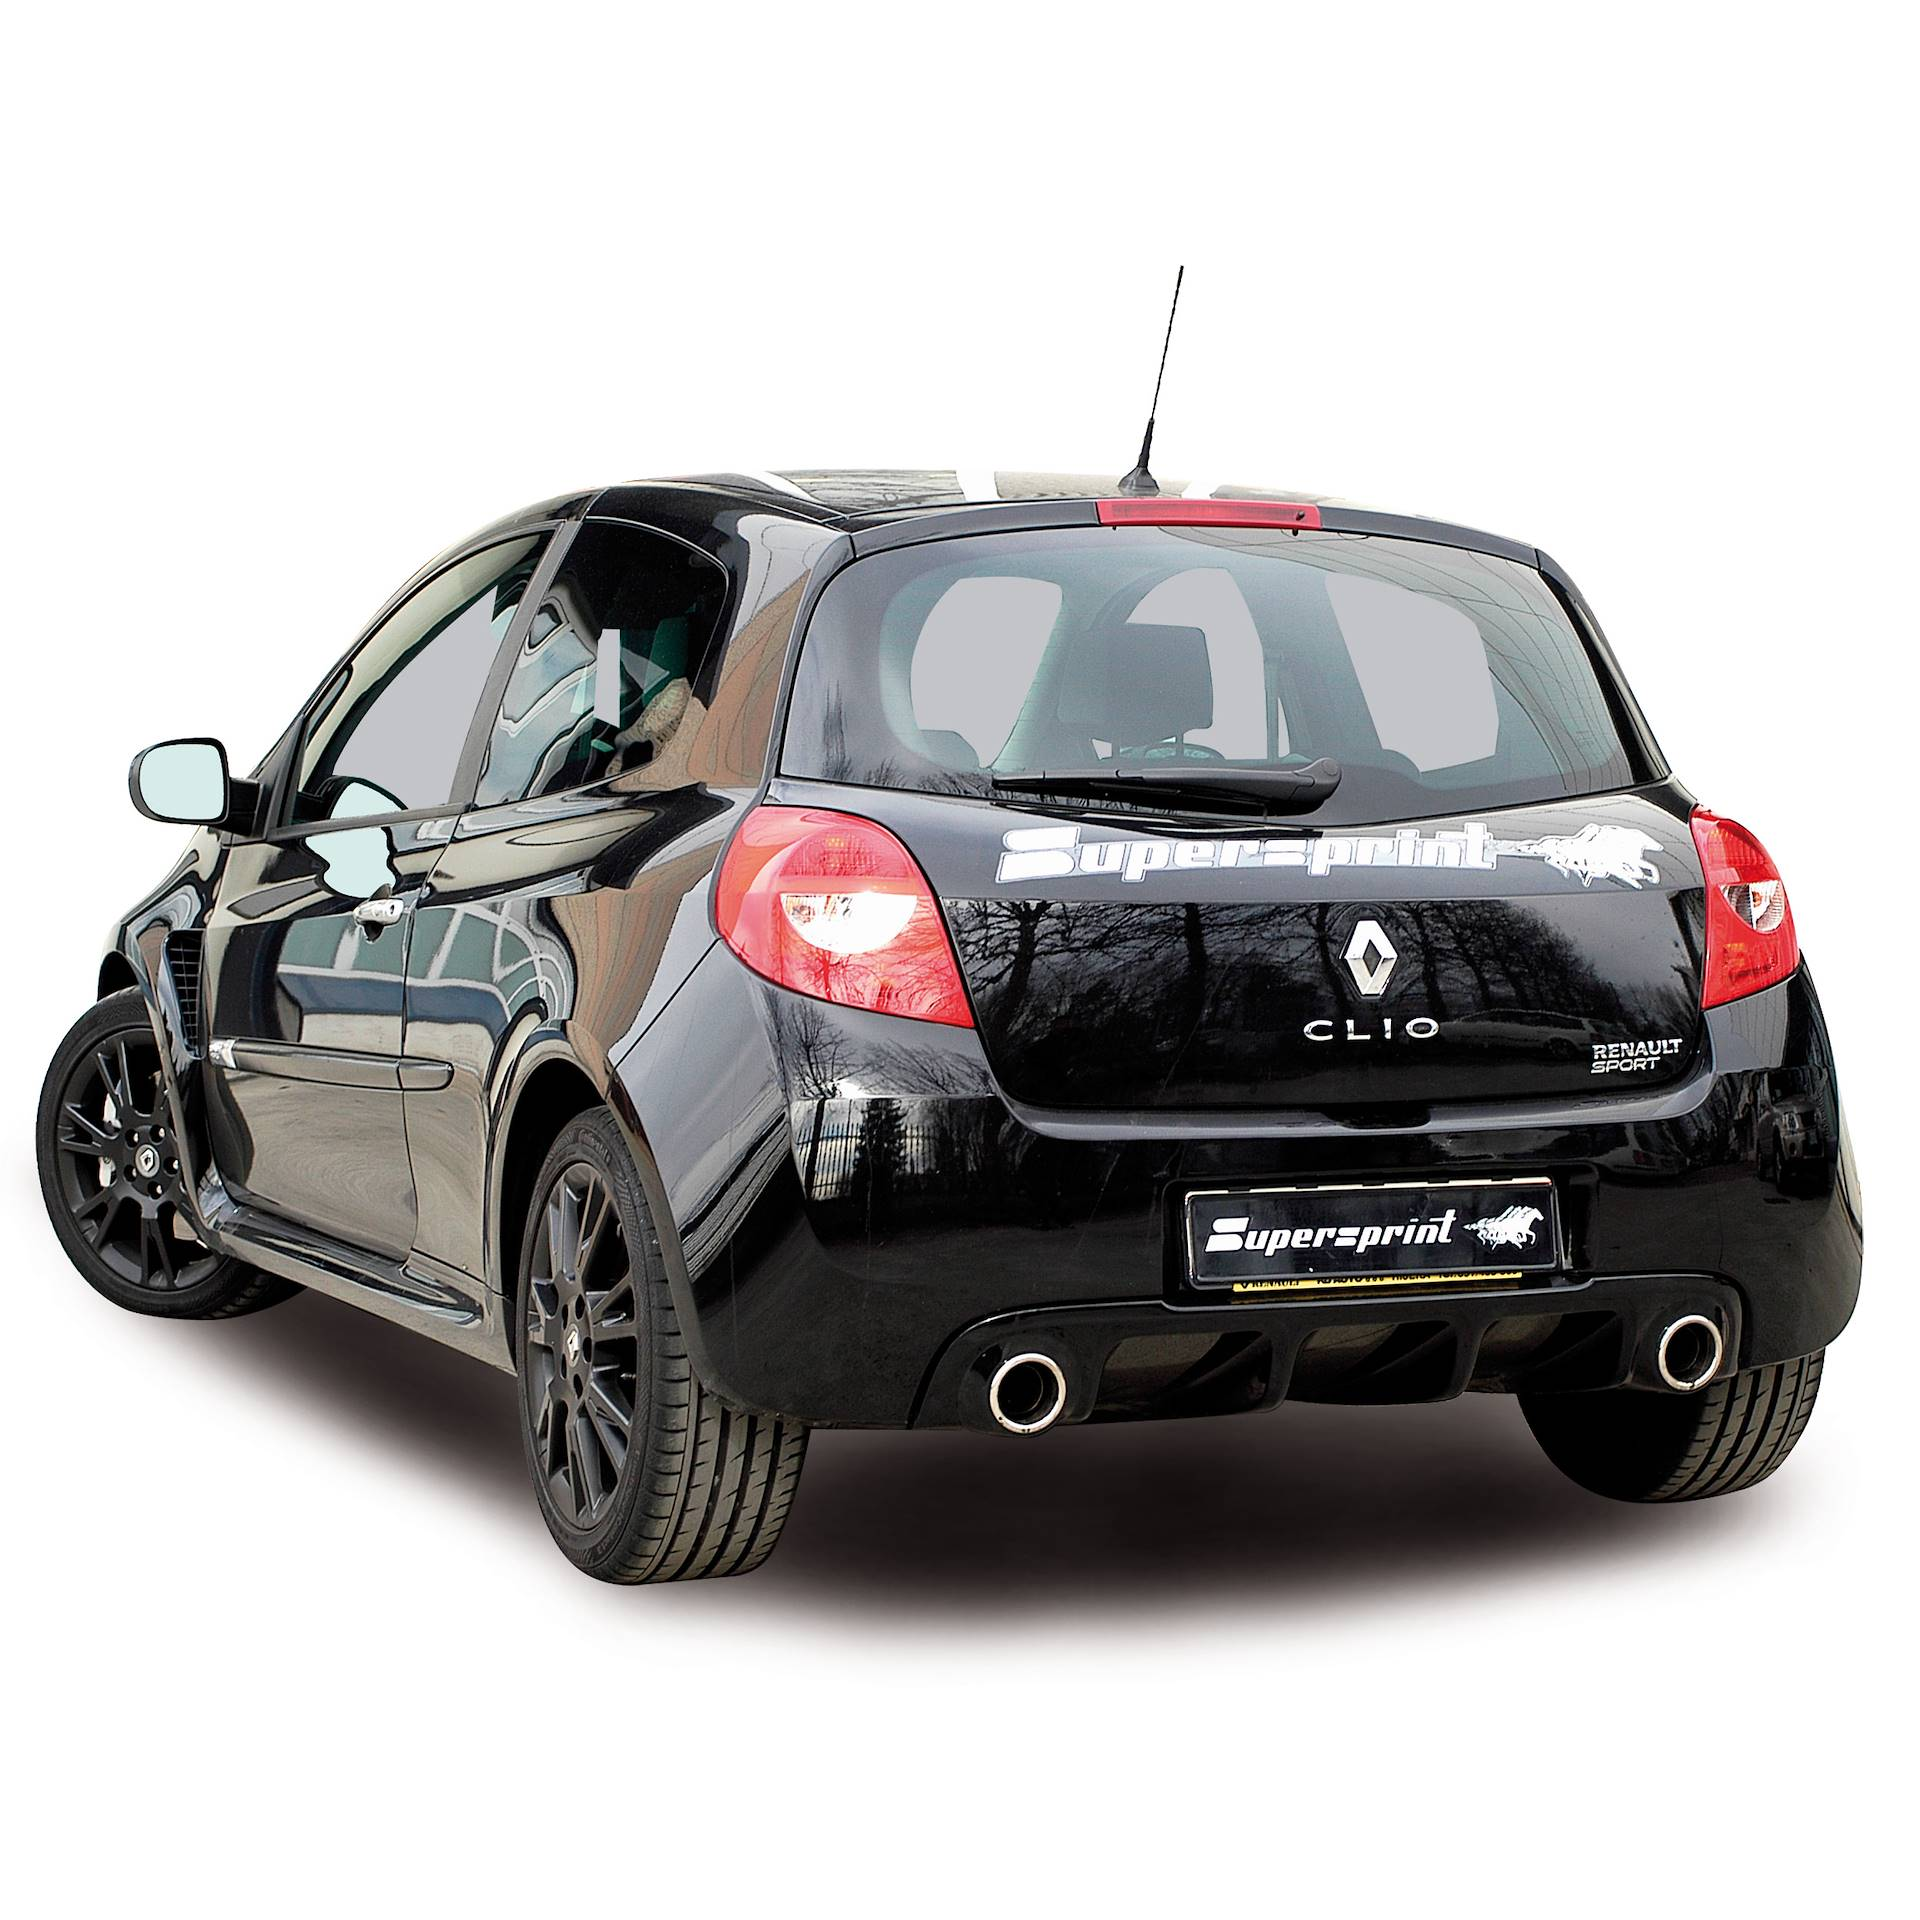 renault clio iii rs 200 hp 2010 renault. Black Bedroom Furniture Sets. Home Design Ideas